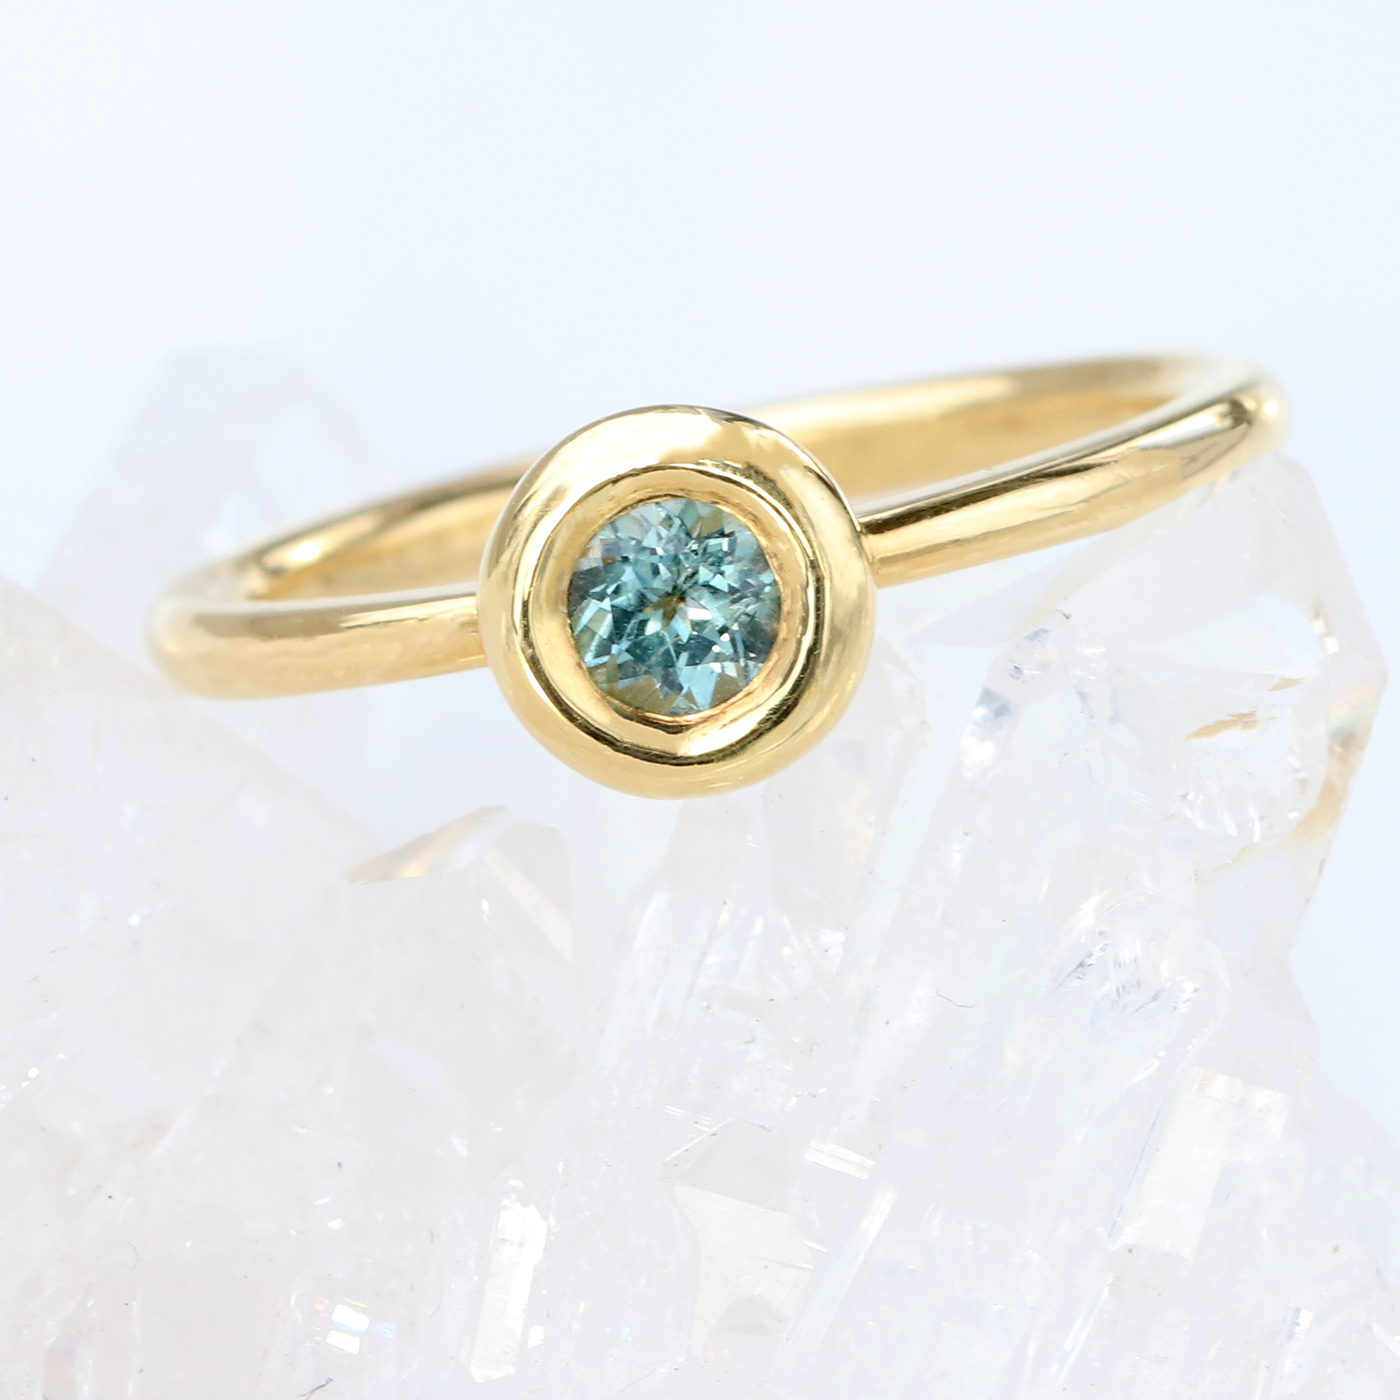 18ct Gold Fair Trade Teal Sapphire Aura Ring, Size N (can be resized K to Q)